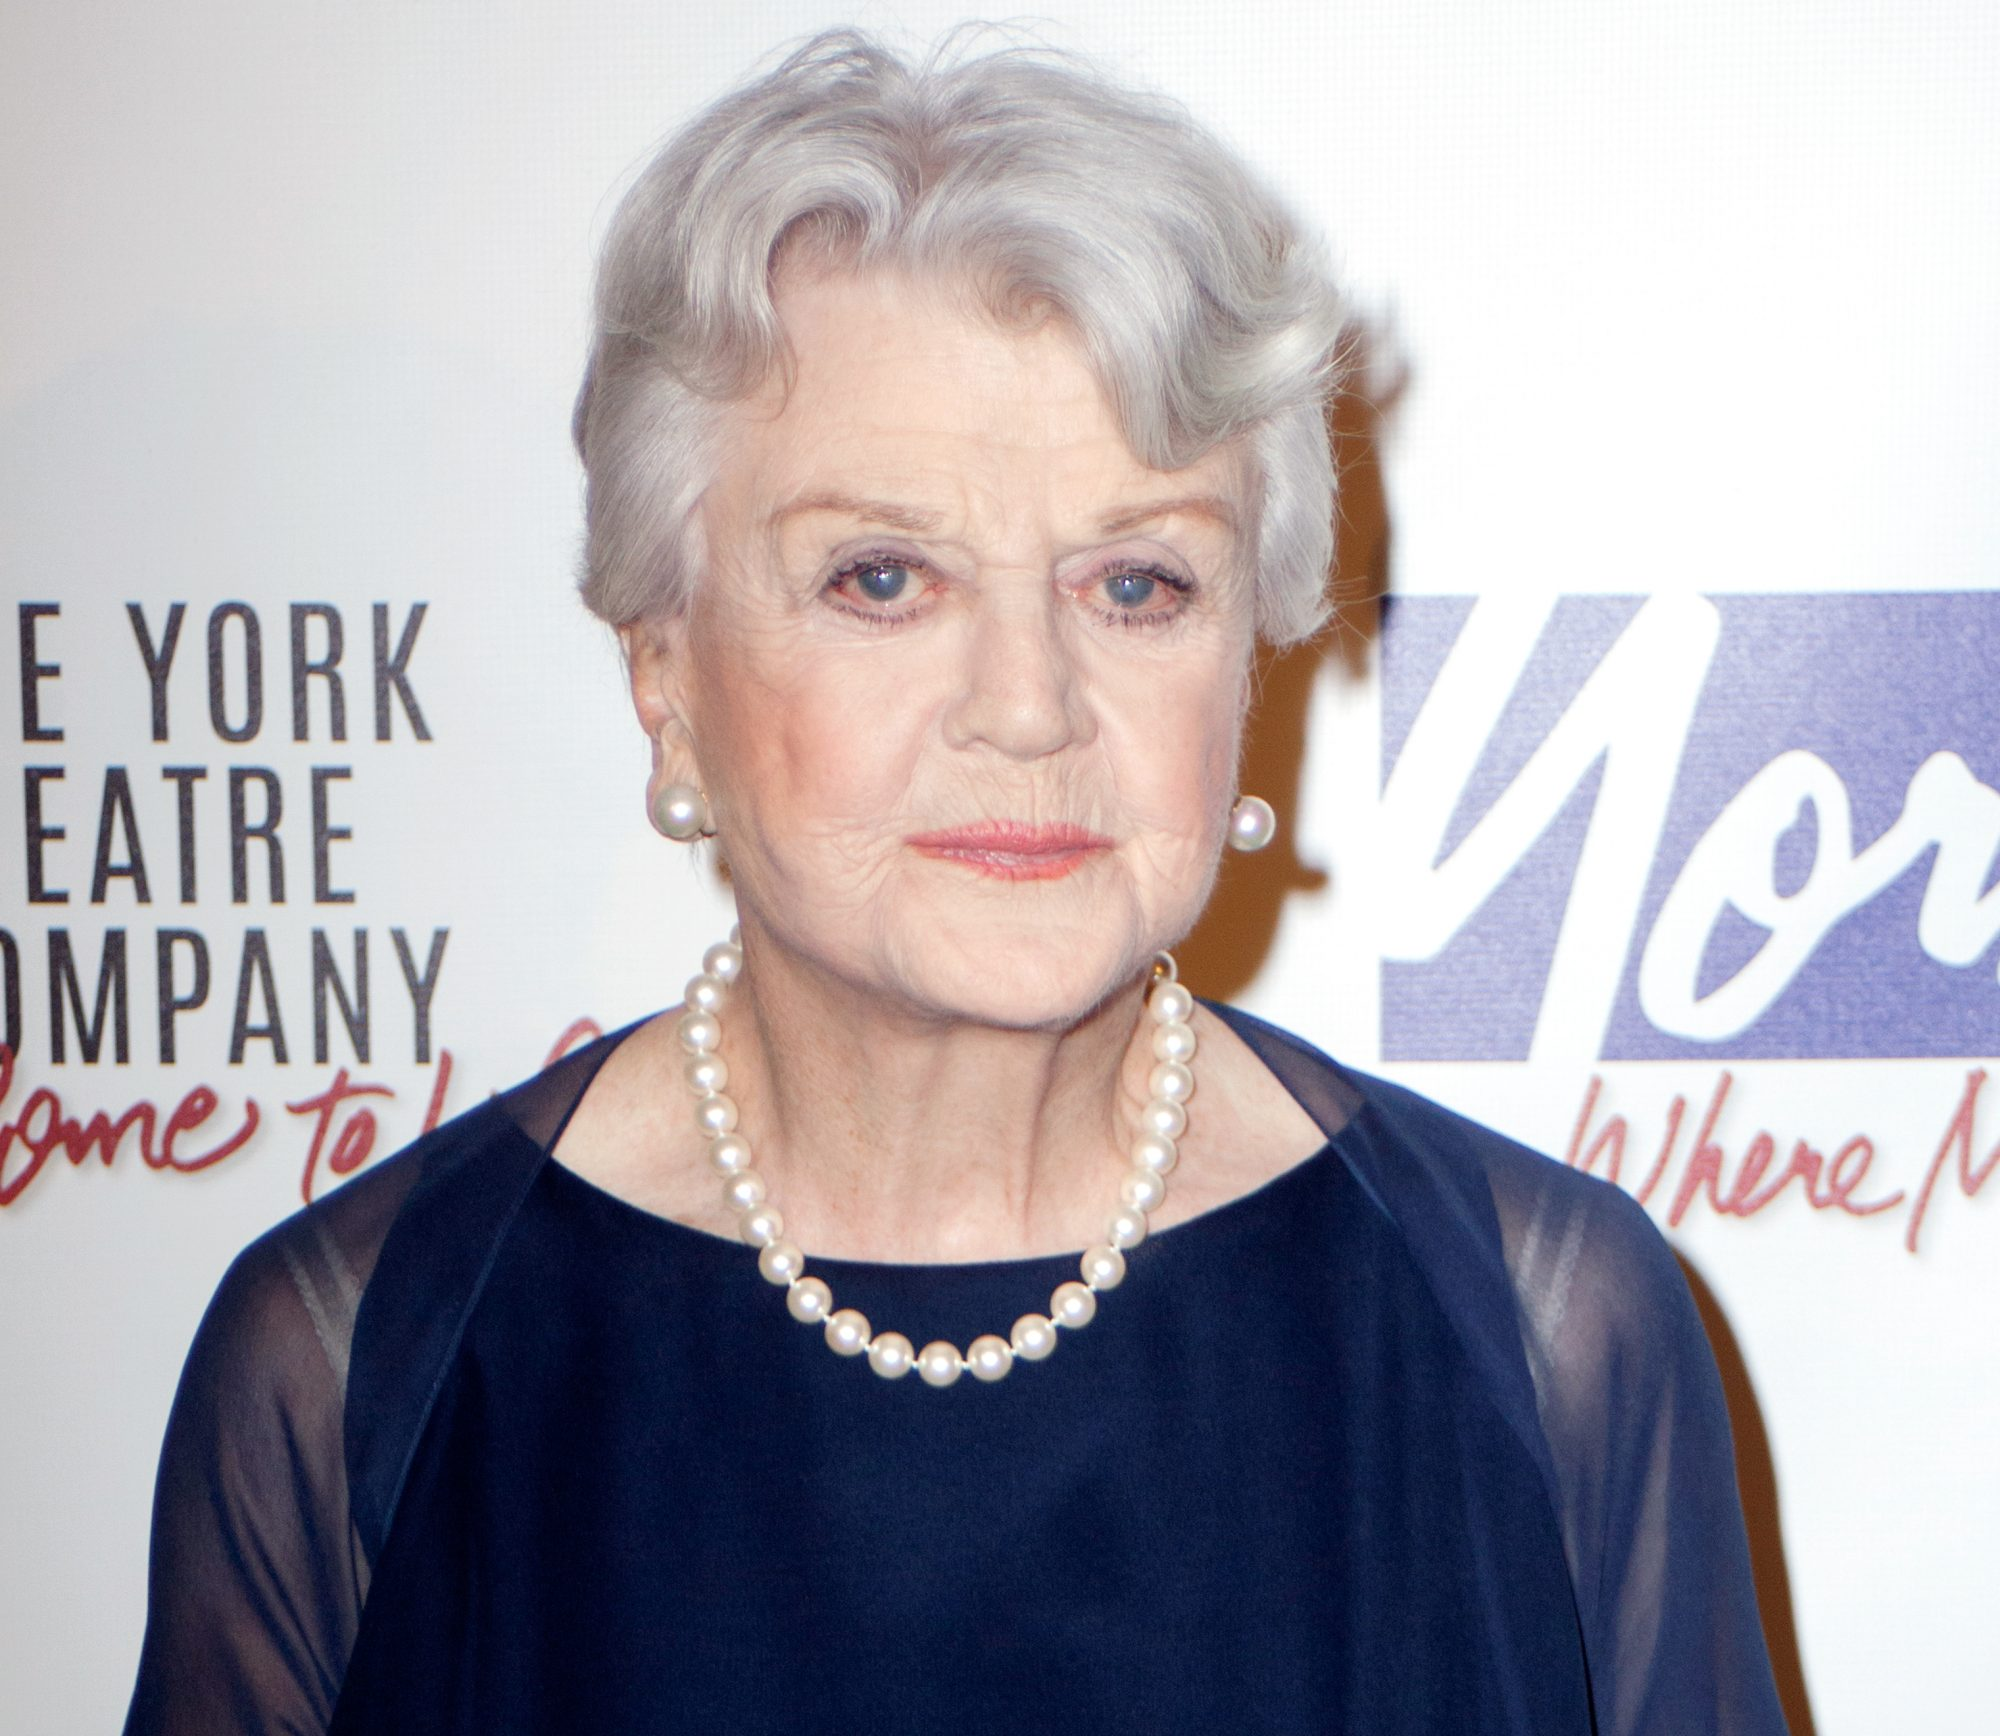 Angela Lansbury, Star of <em>Gaslight</em>, Says Attractive Women Are Partly to Blame for Sexual Harassment